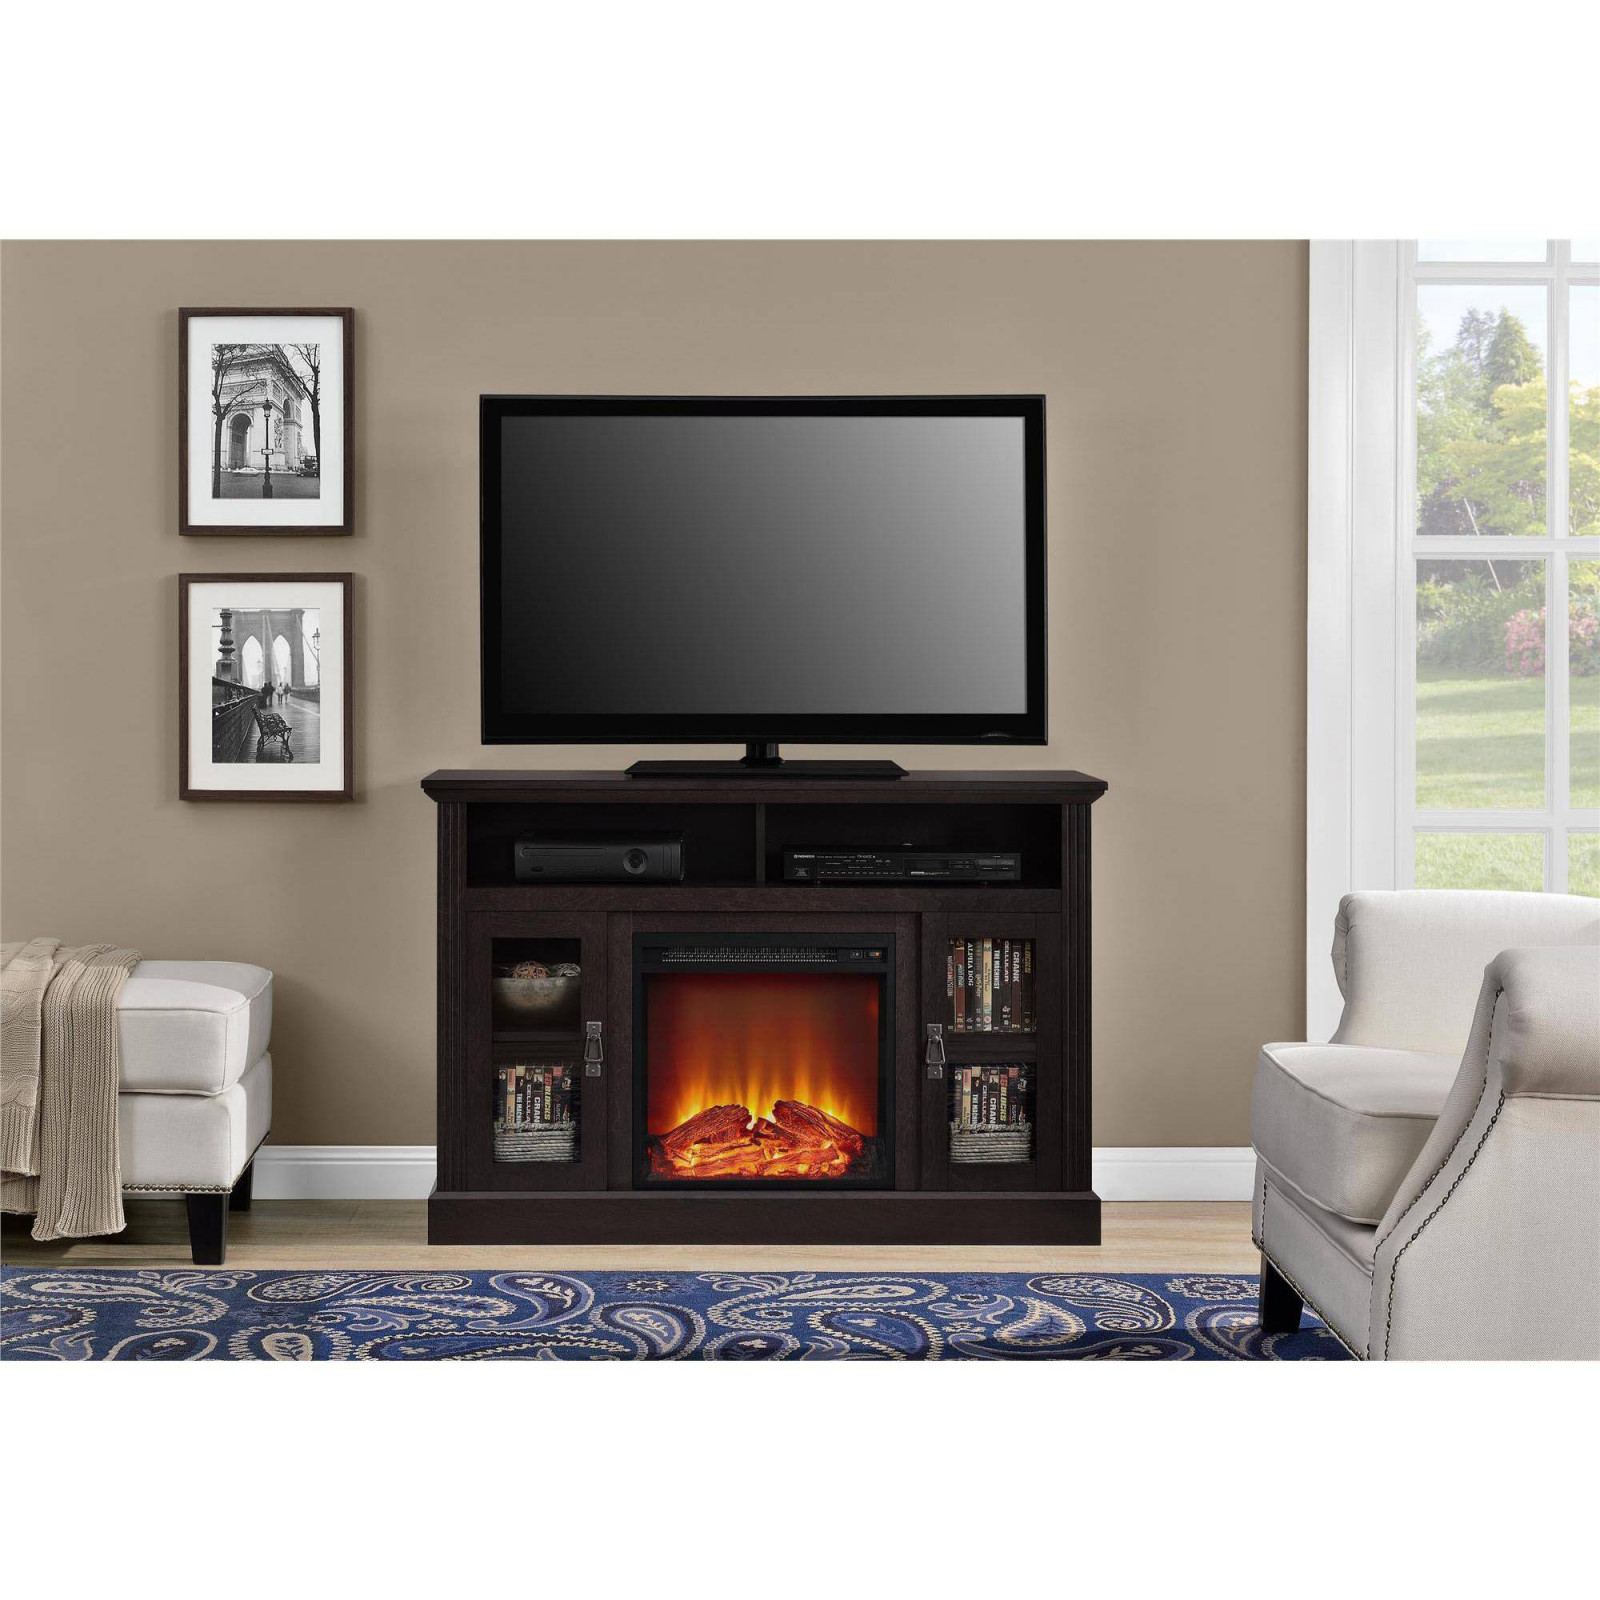 electric fireplace tv stand chic ameriwood home chicago electric fireplace tv console for tvs up to a of electric fireplace tv stand